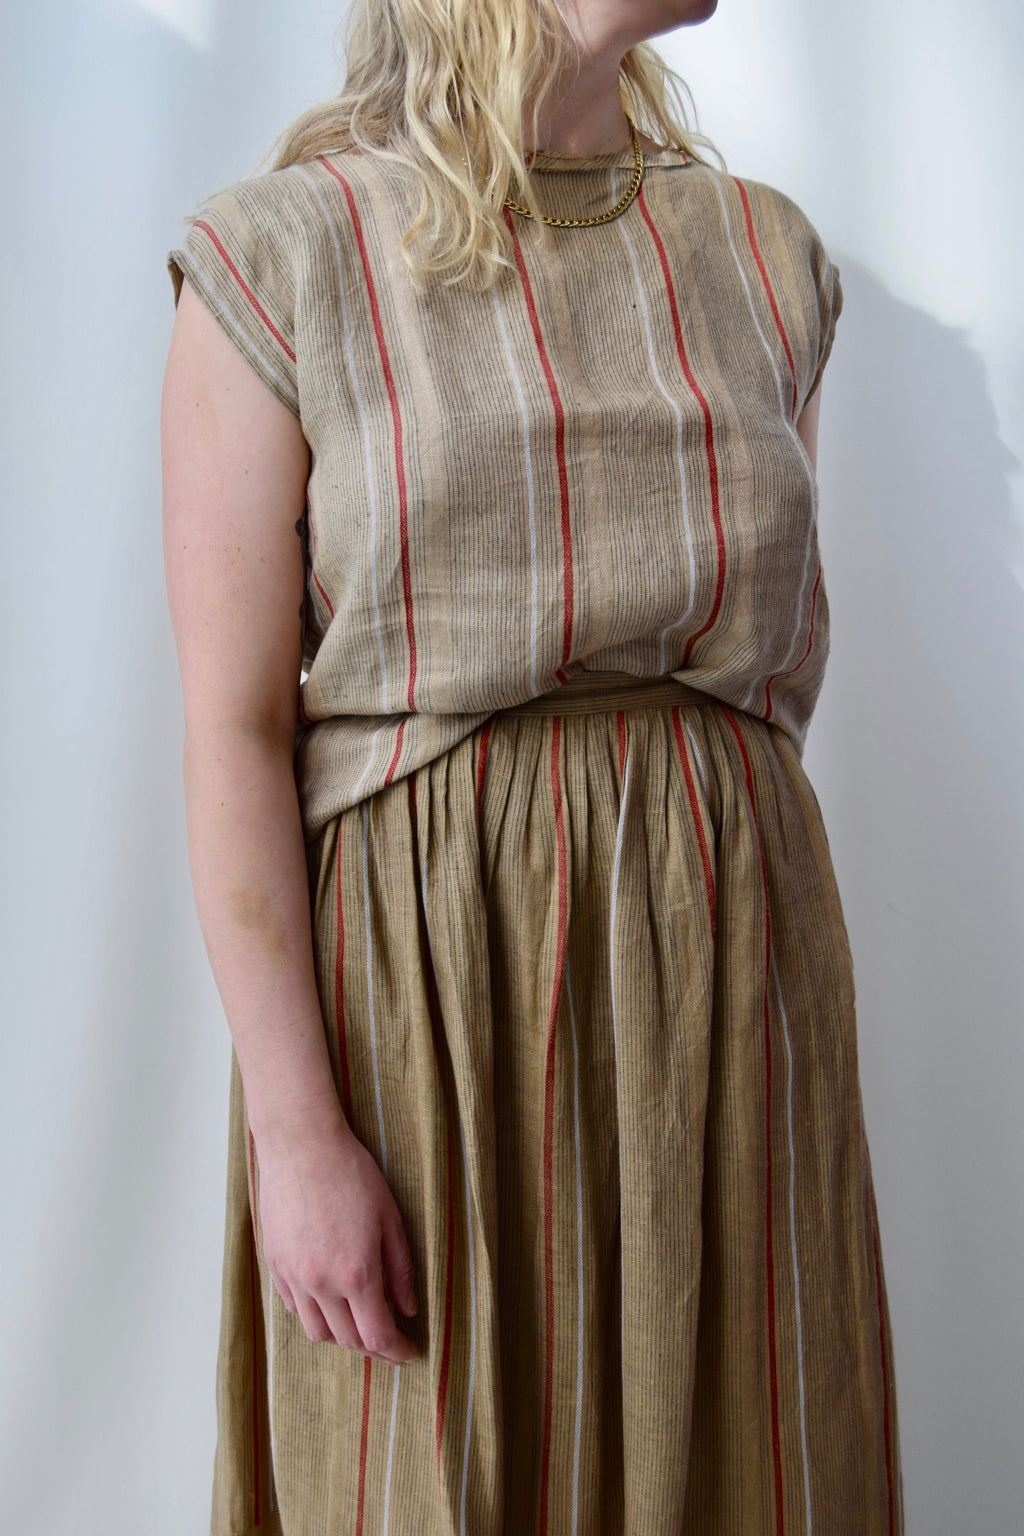 1980's Two Piece Linen Skirt Set FREE SHIPPING TO THE U.S.